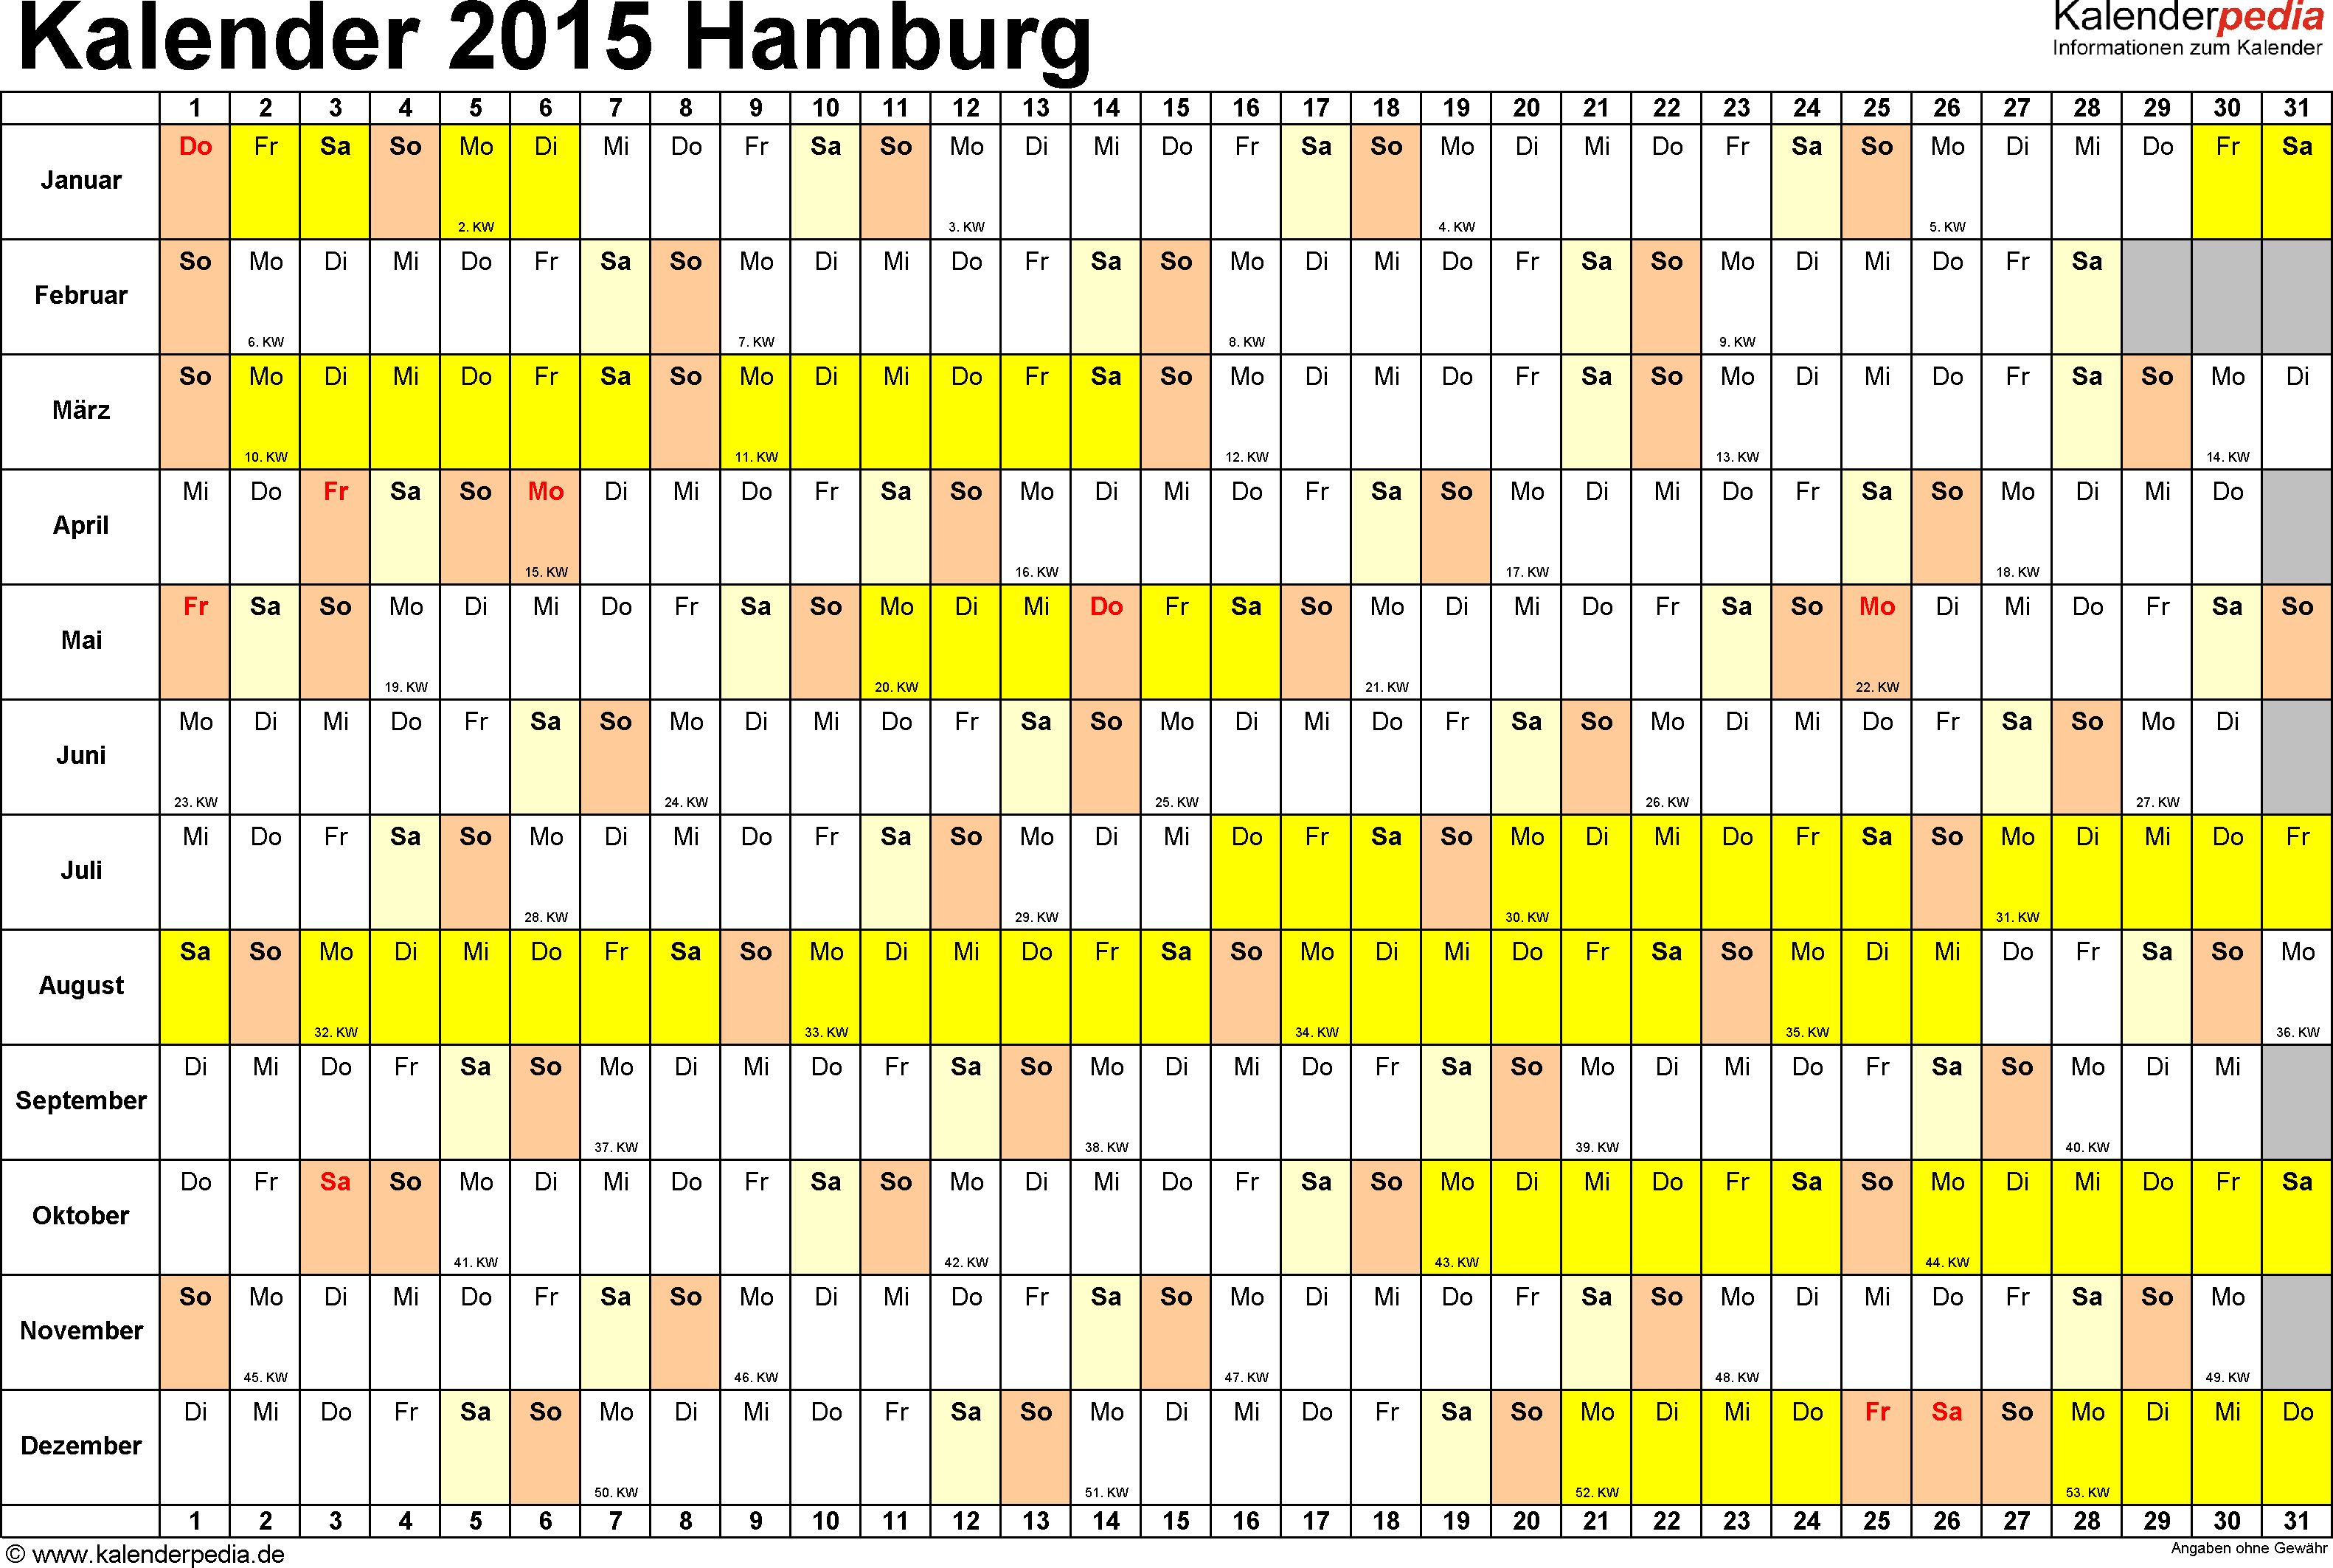 kalender 2015 hamburg ferien feiertage excel vorlagen. Black Bedroom Furniture Sets. Home Design Ideas